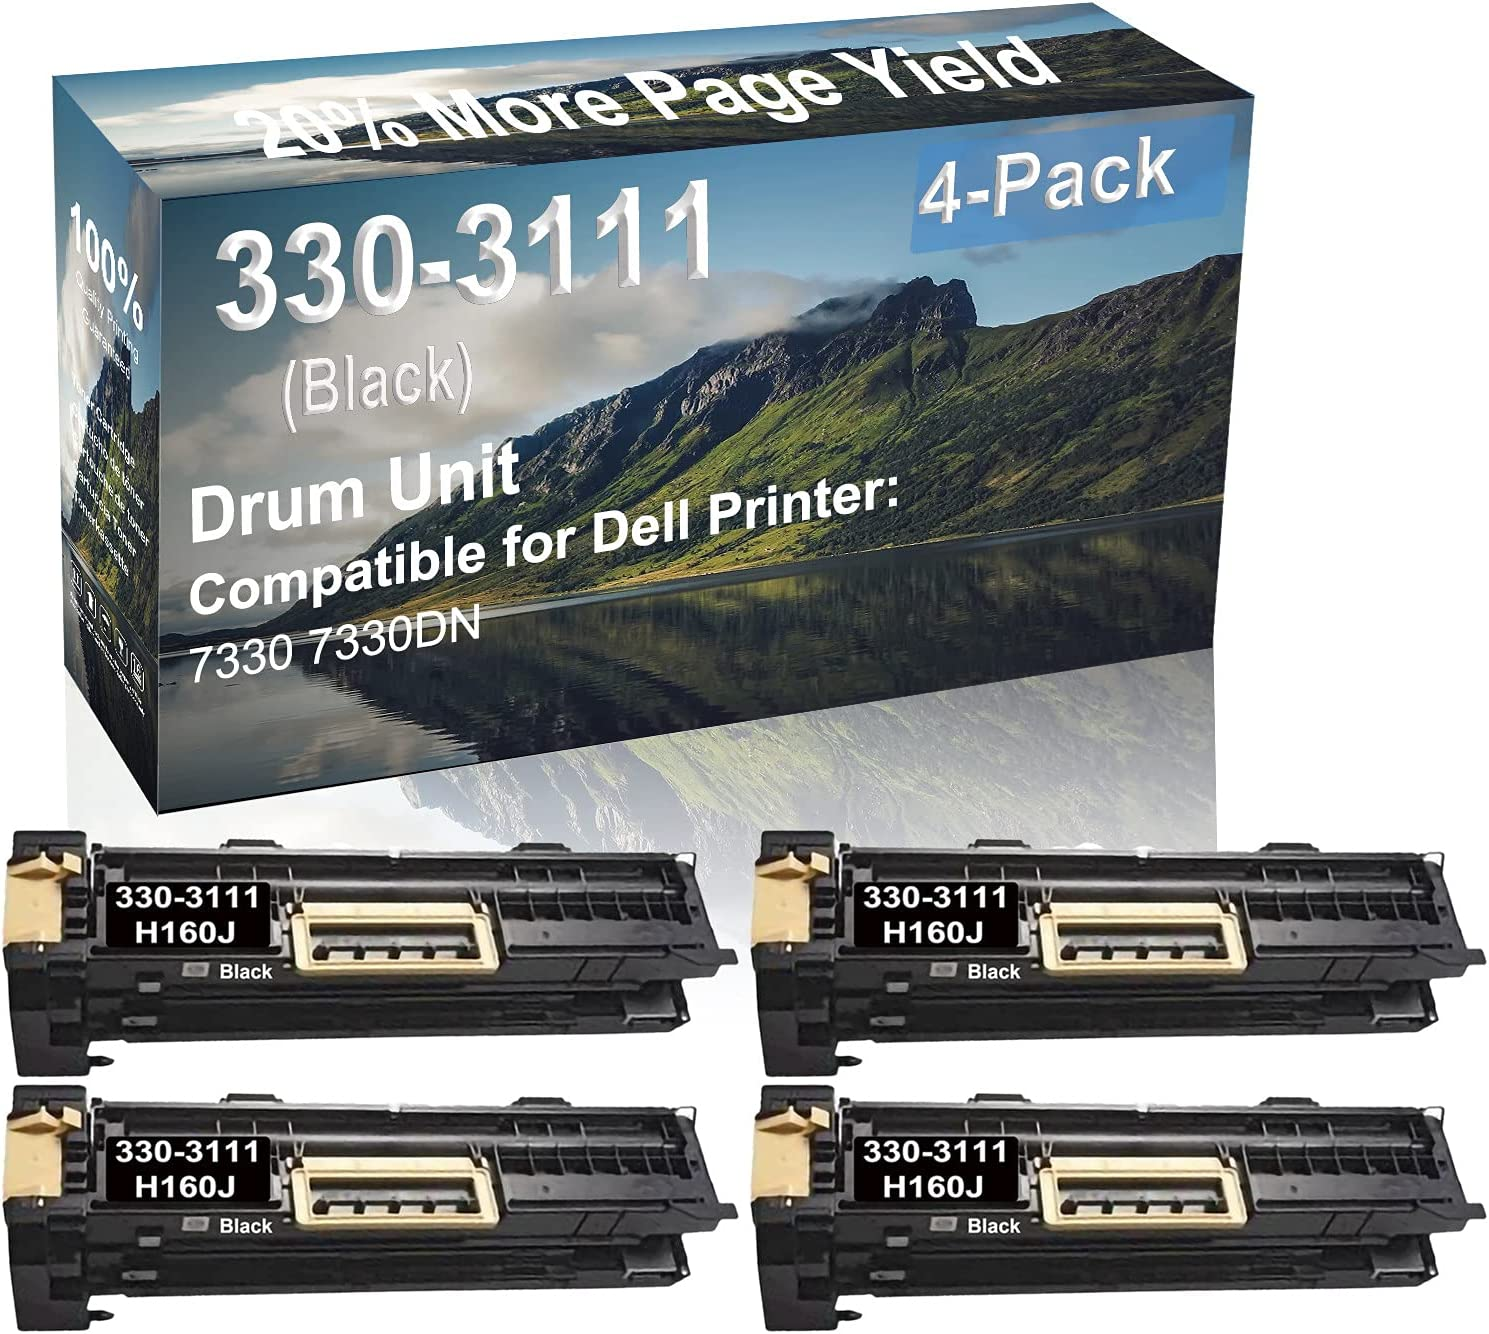 4-Pack Compatible Drum Unit (Black) Replacement for Dell 330-3111 H160J Drum Kit use for Dell 7330 7330DN Printer